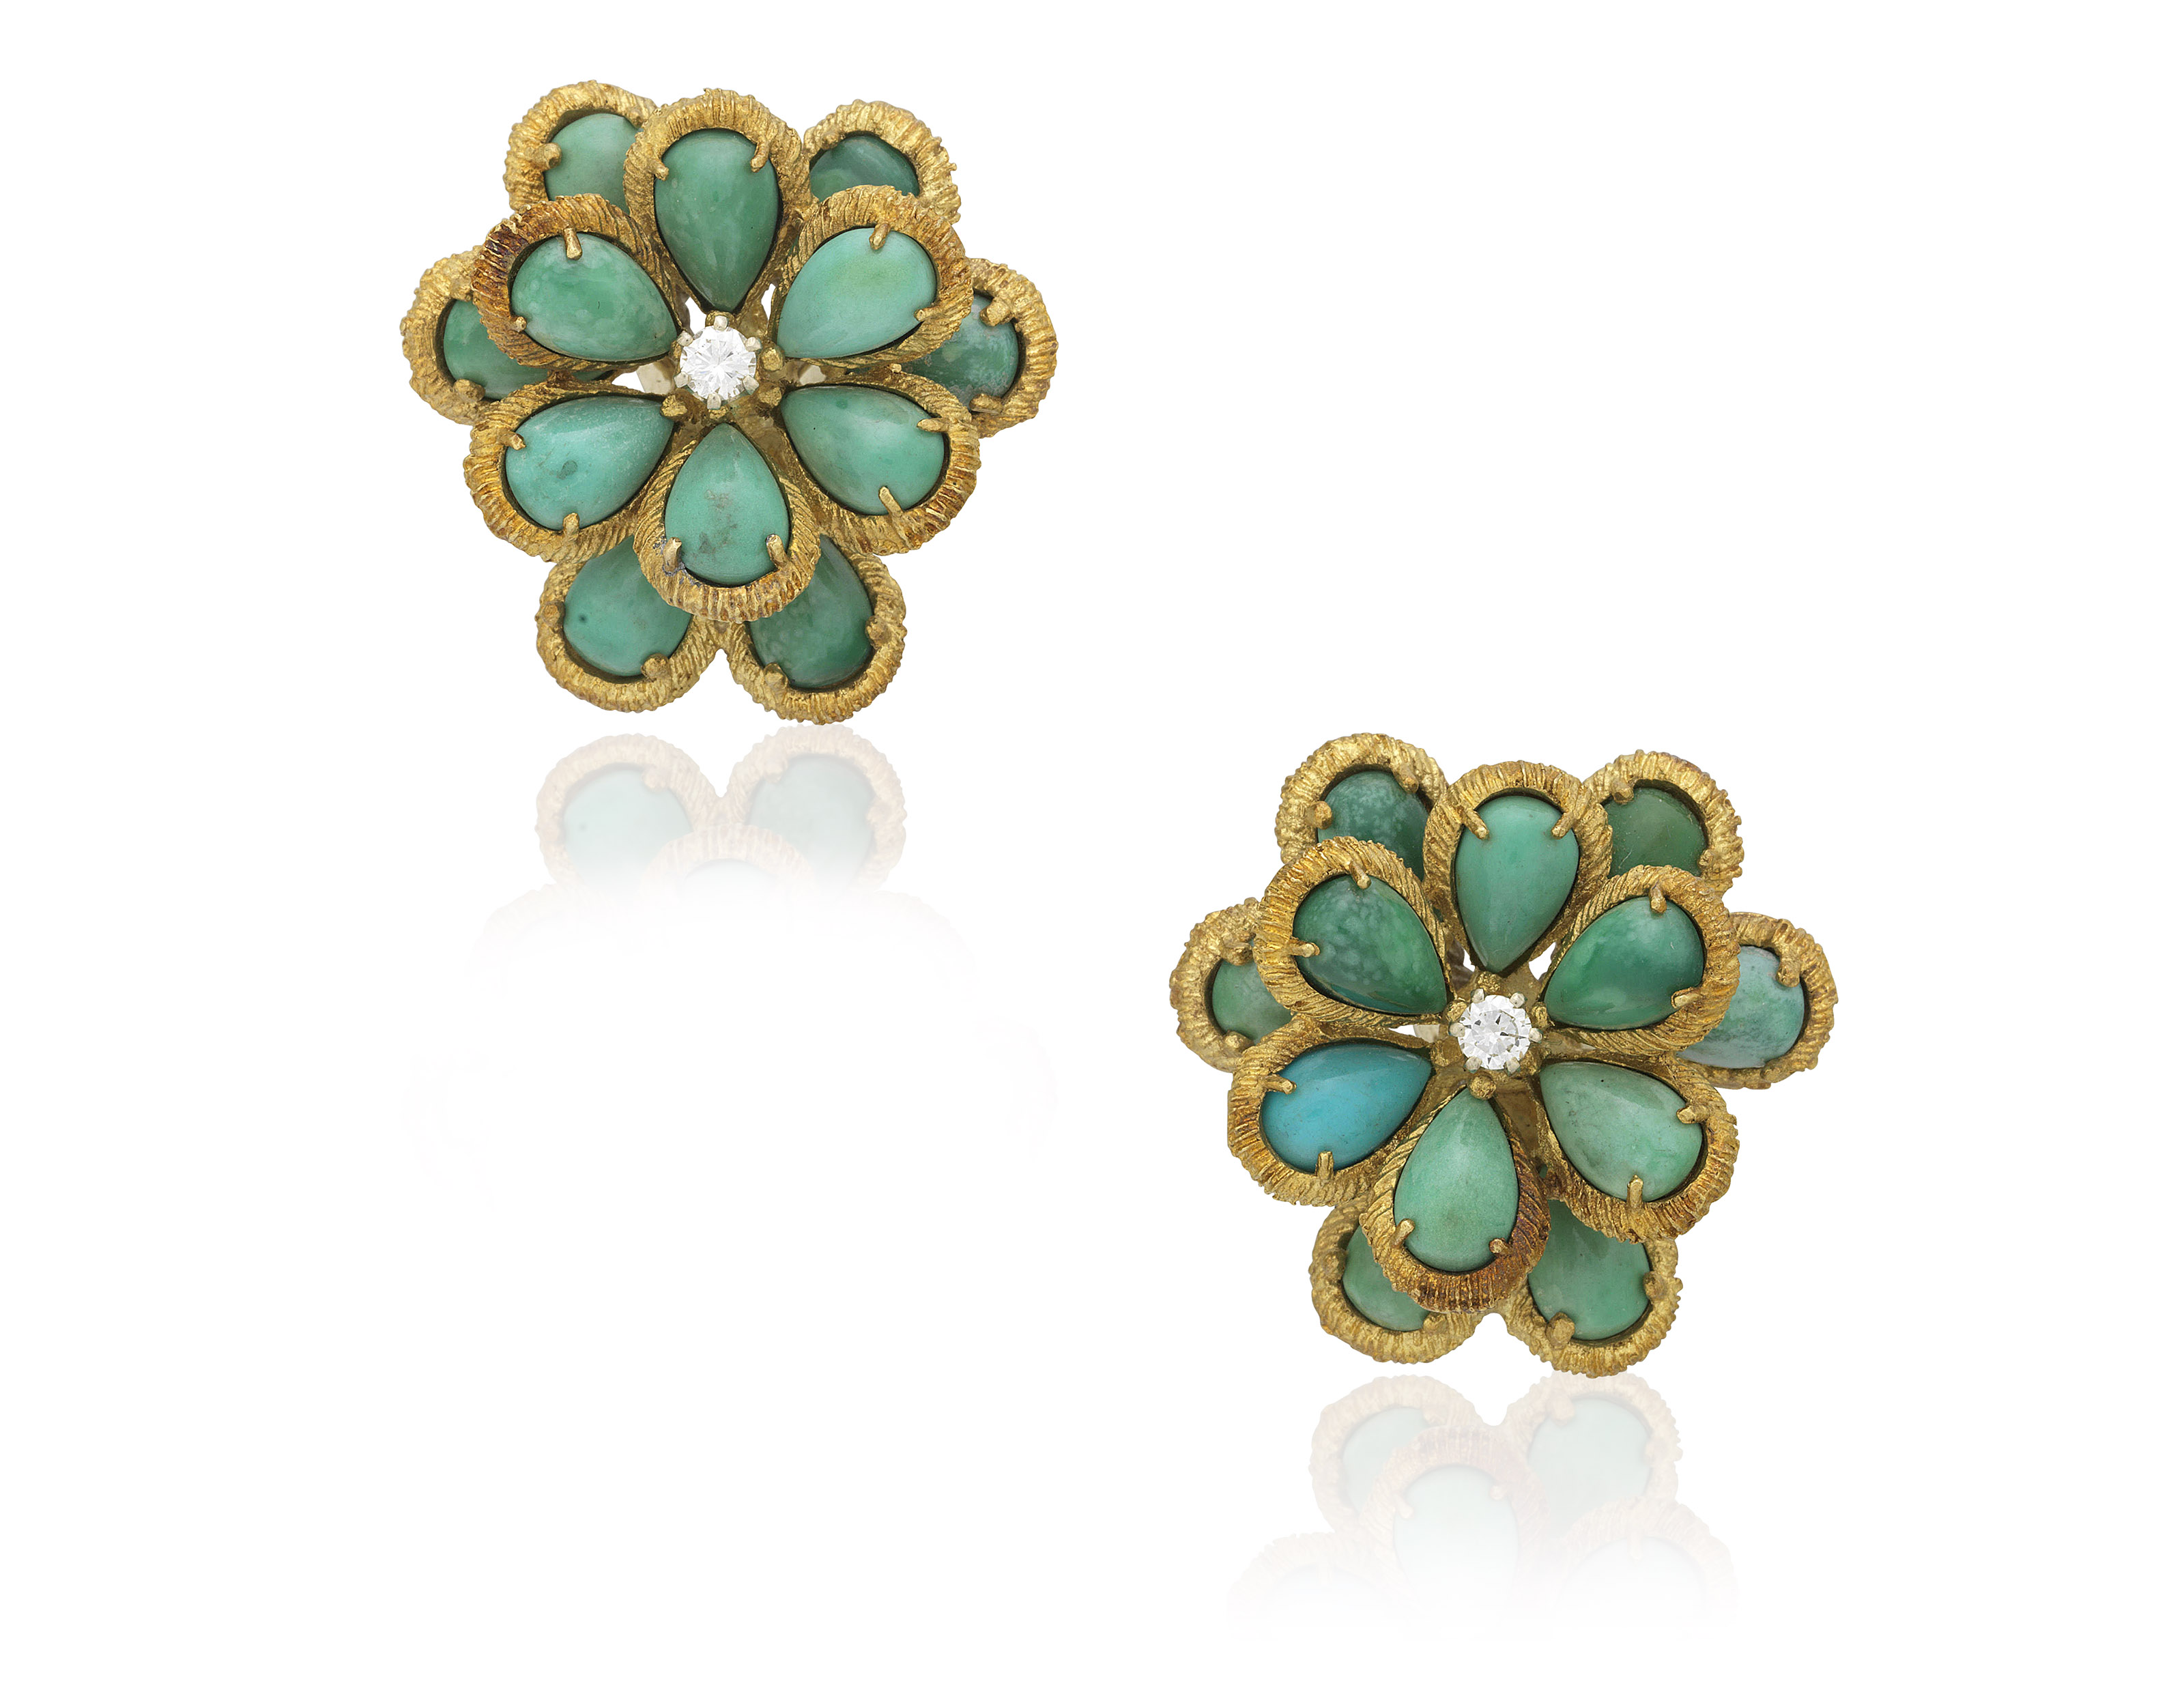 diamond image gold earrings halo turqouise in round drop turquoise white and